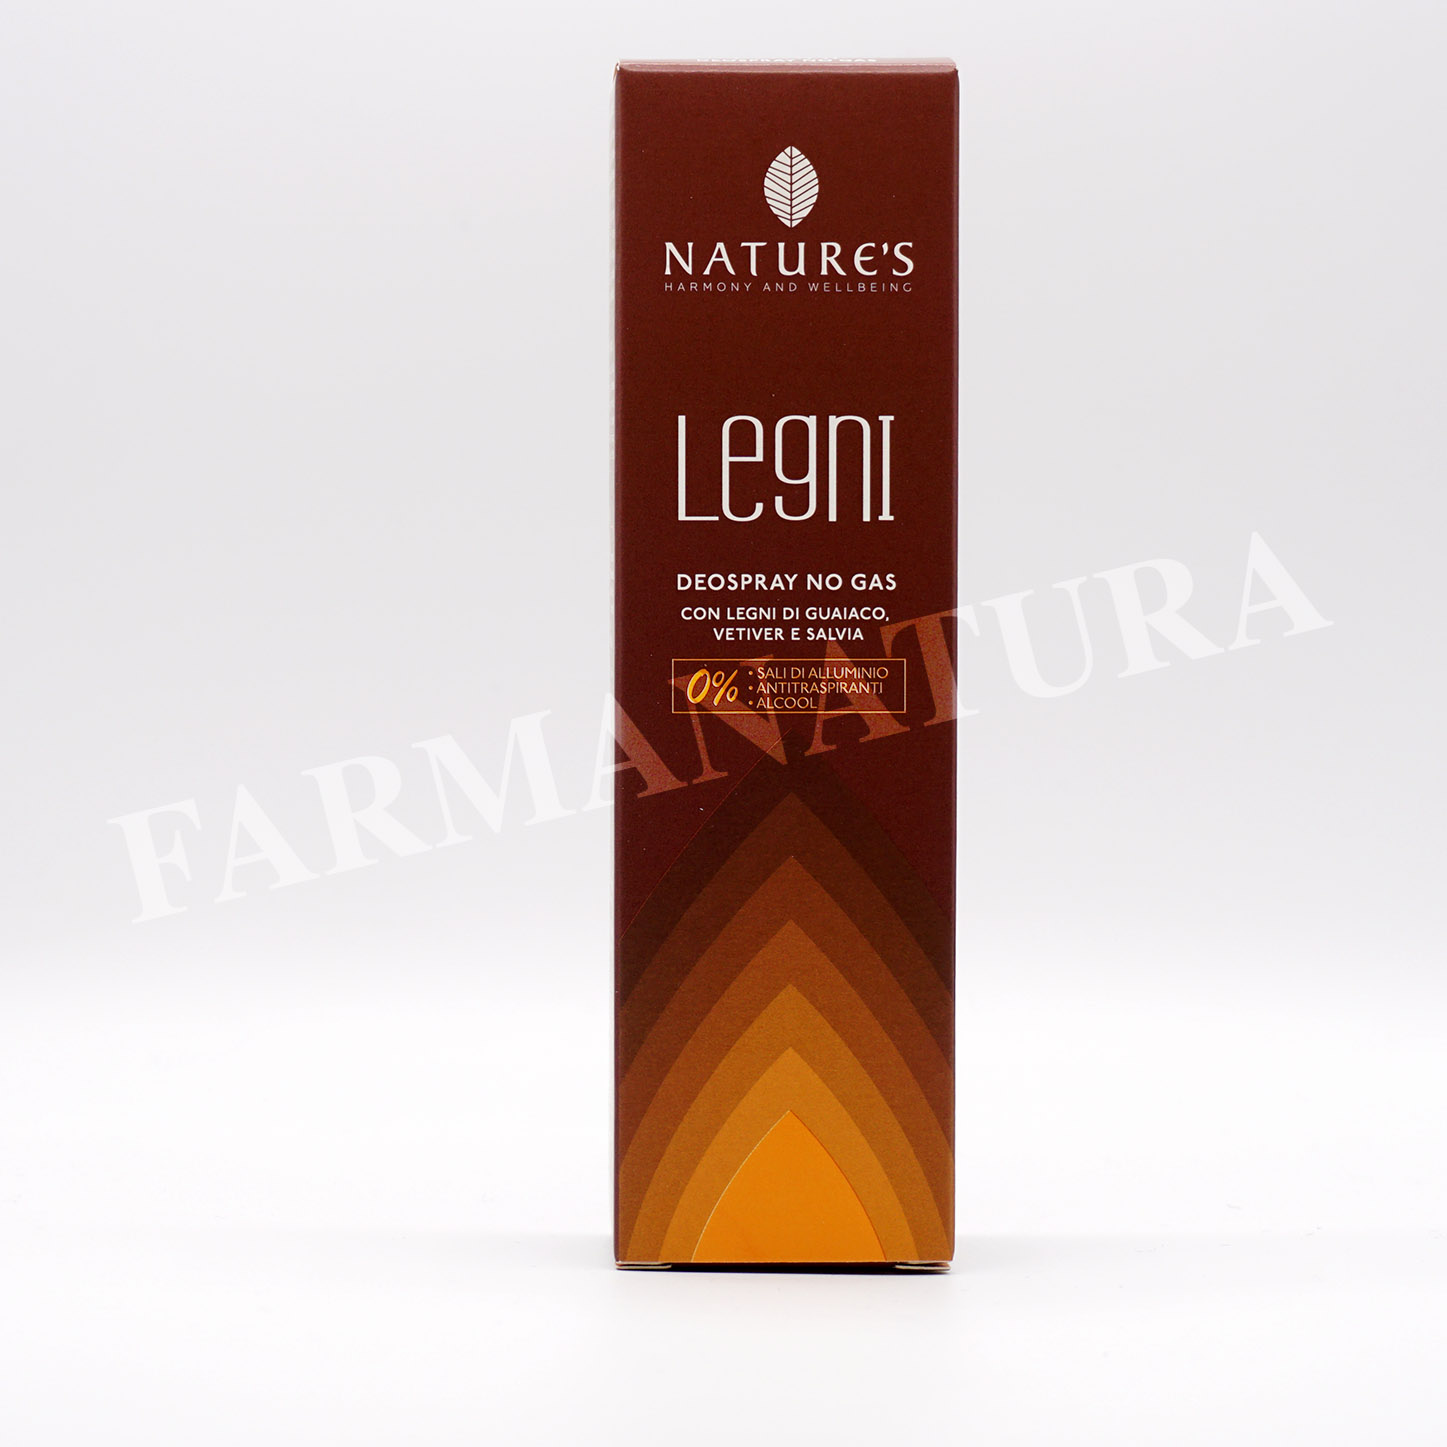 Legni Uomo Deospray No Gas 75 Ml Nature'S